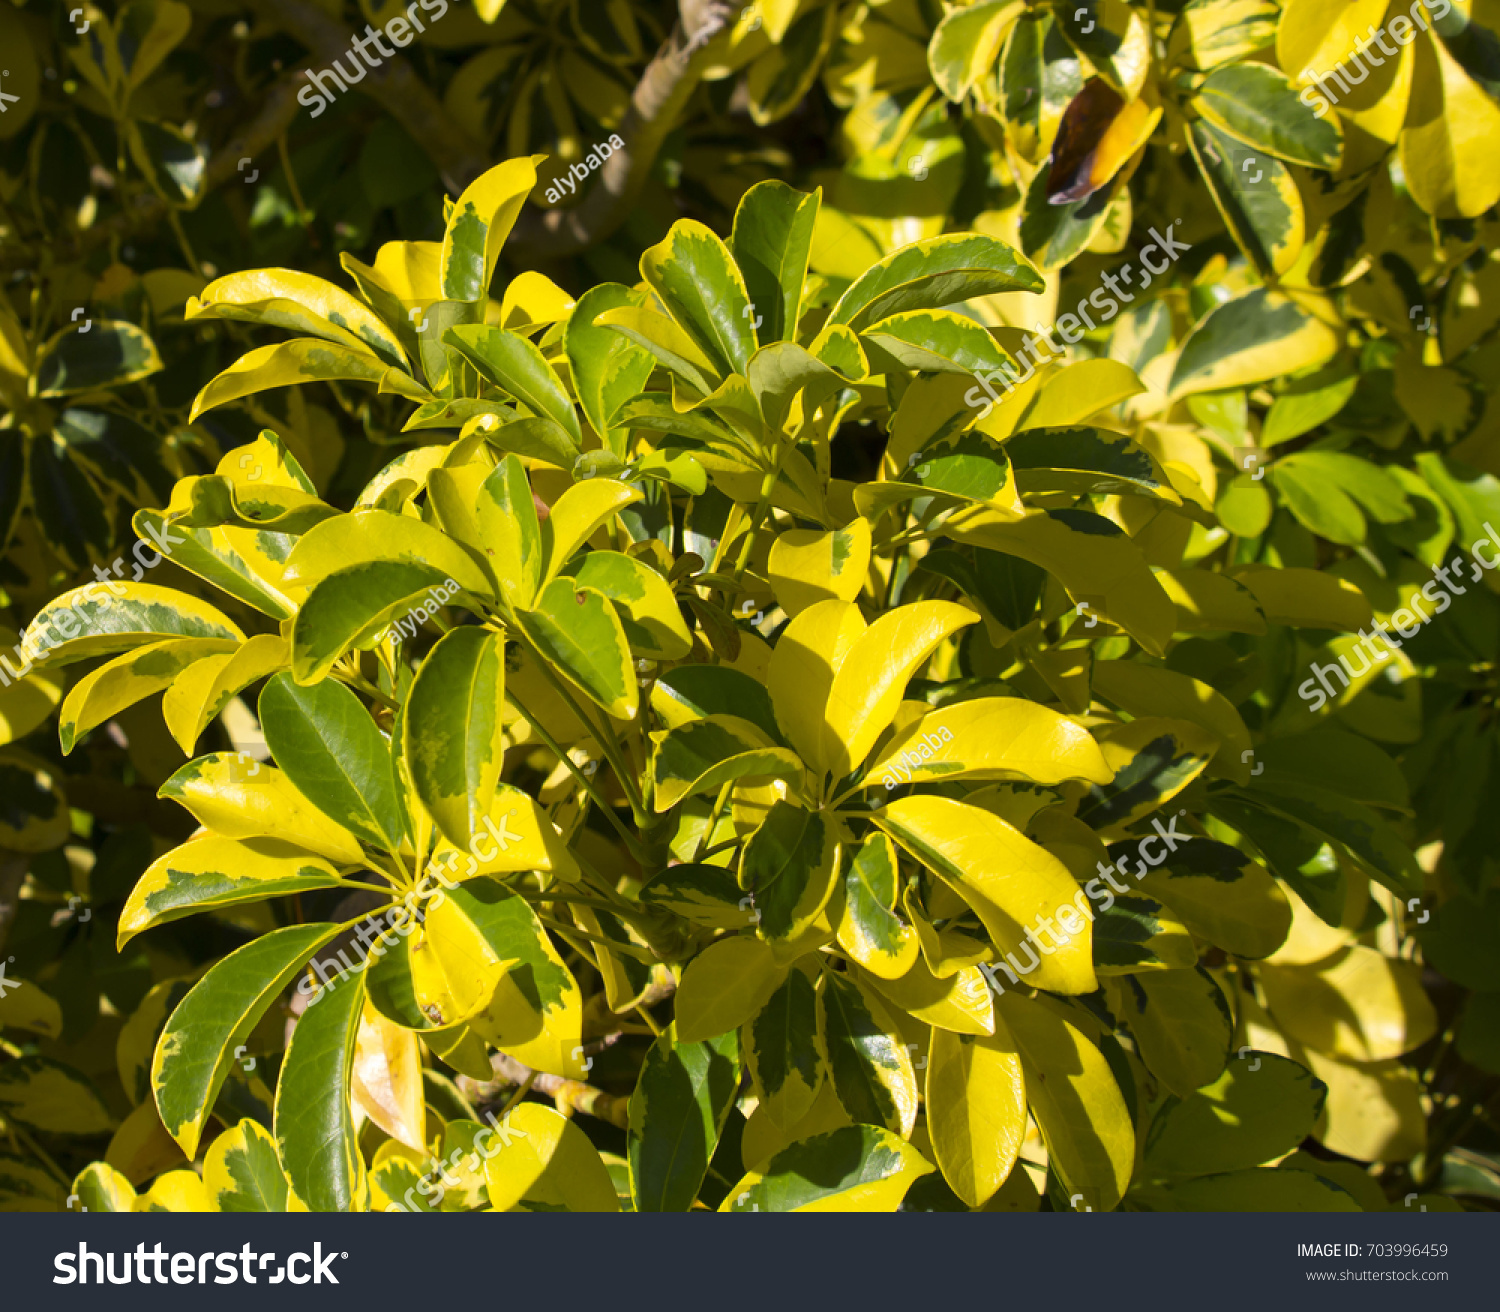 Variegated Yellow Green Leaves Dwarf Umbrella Stock Photo Safe To